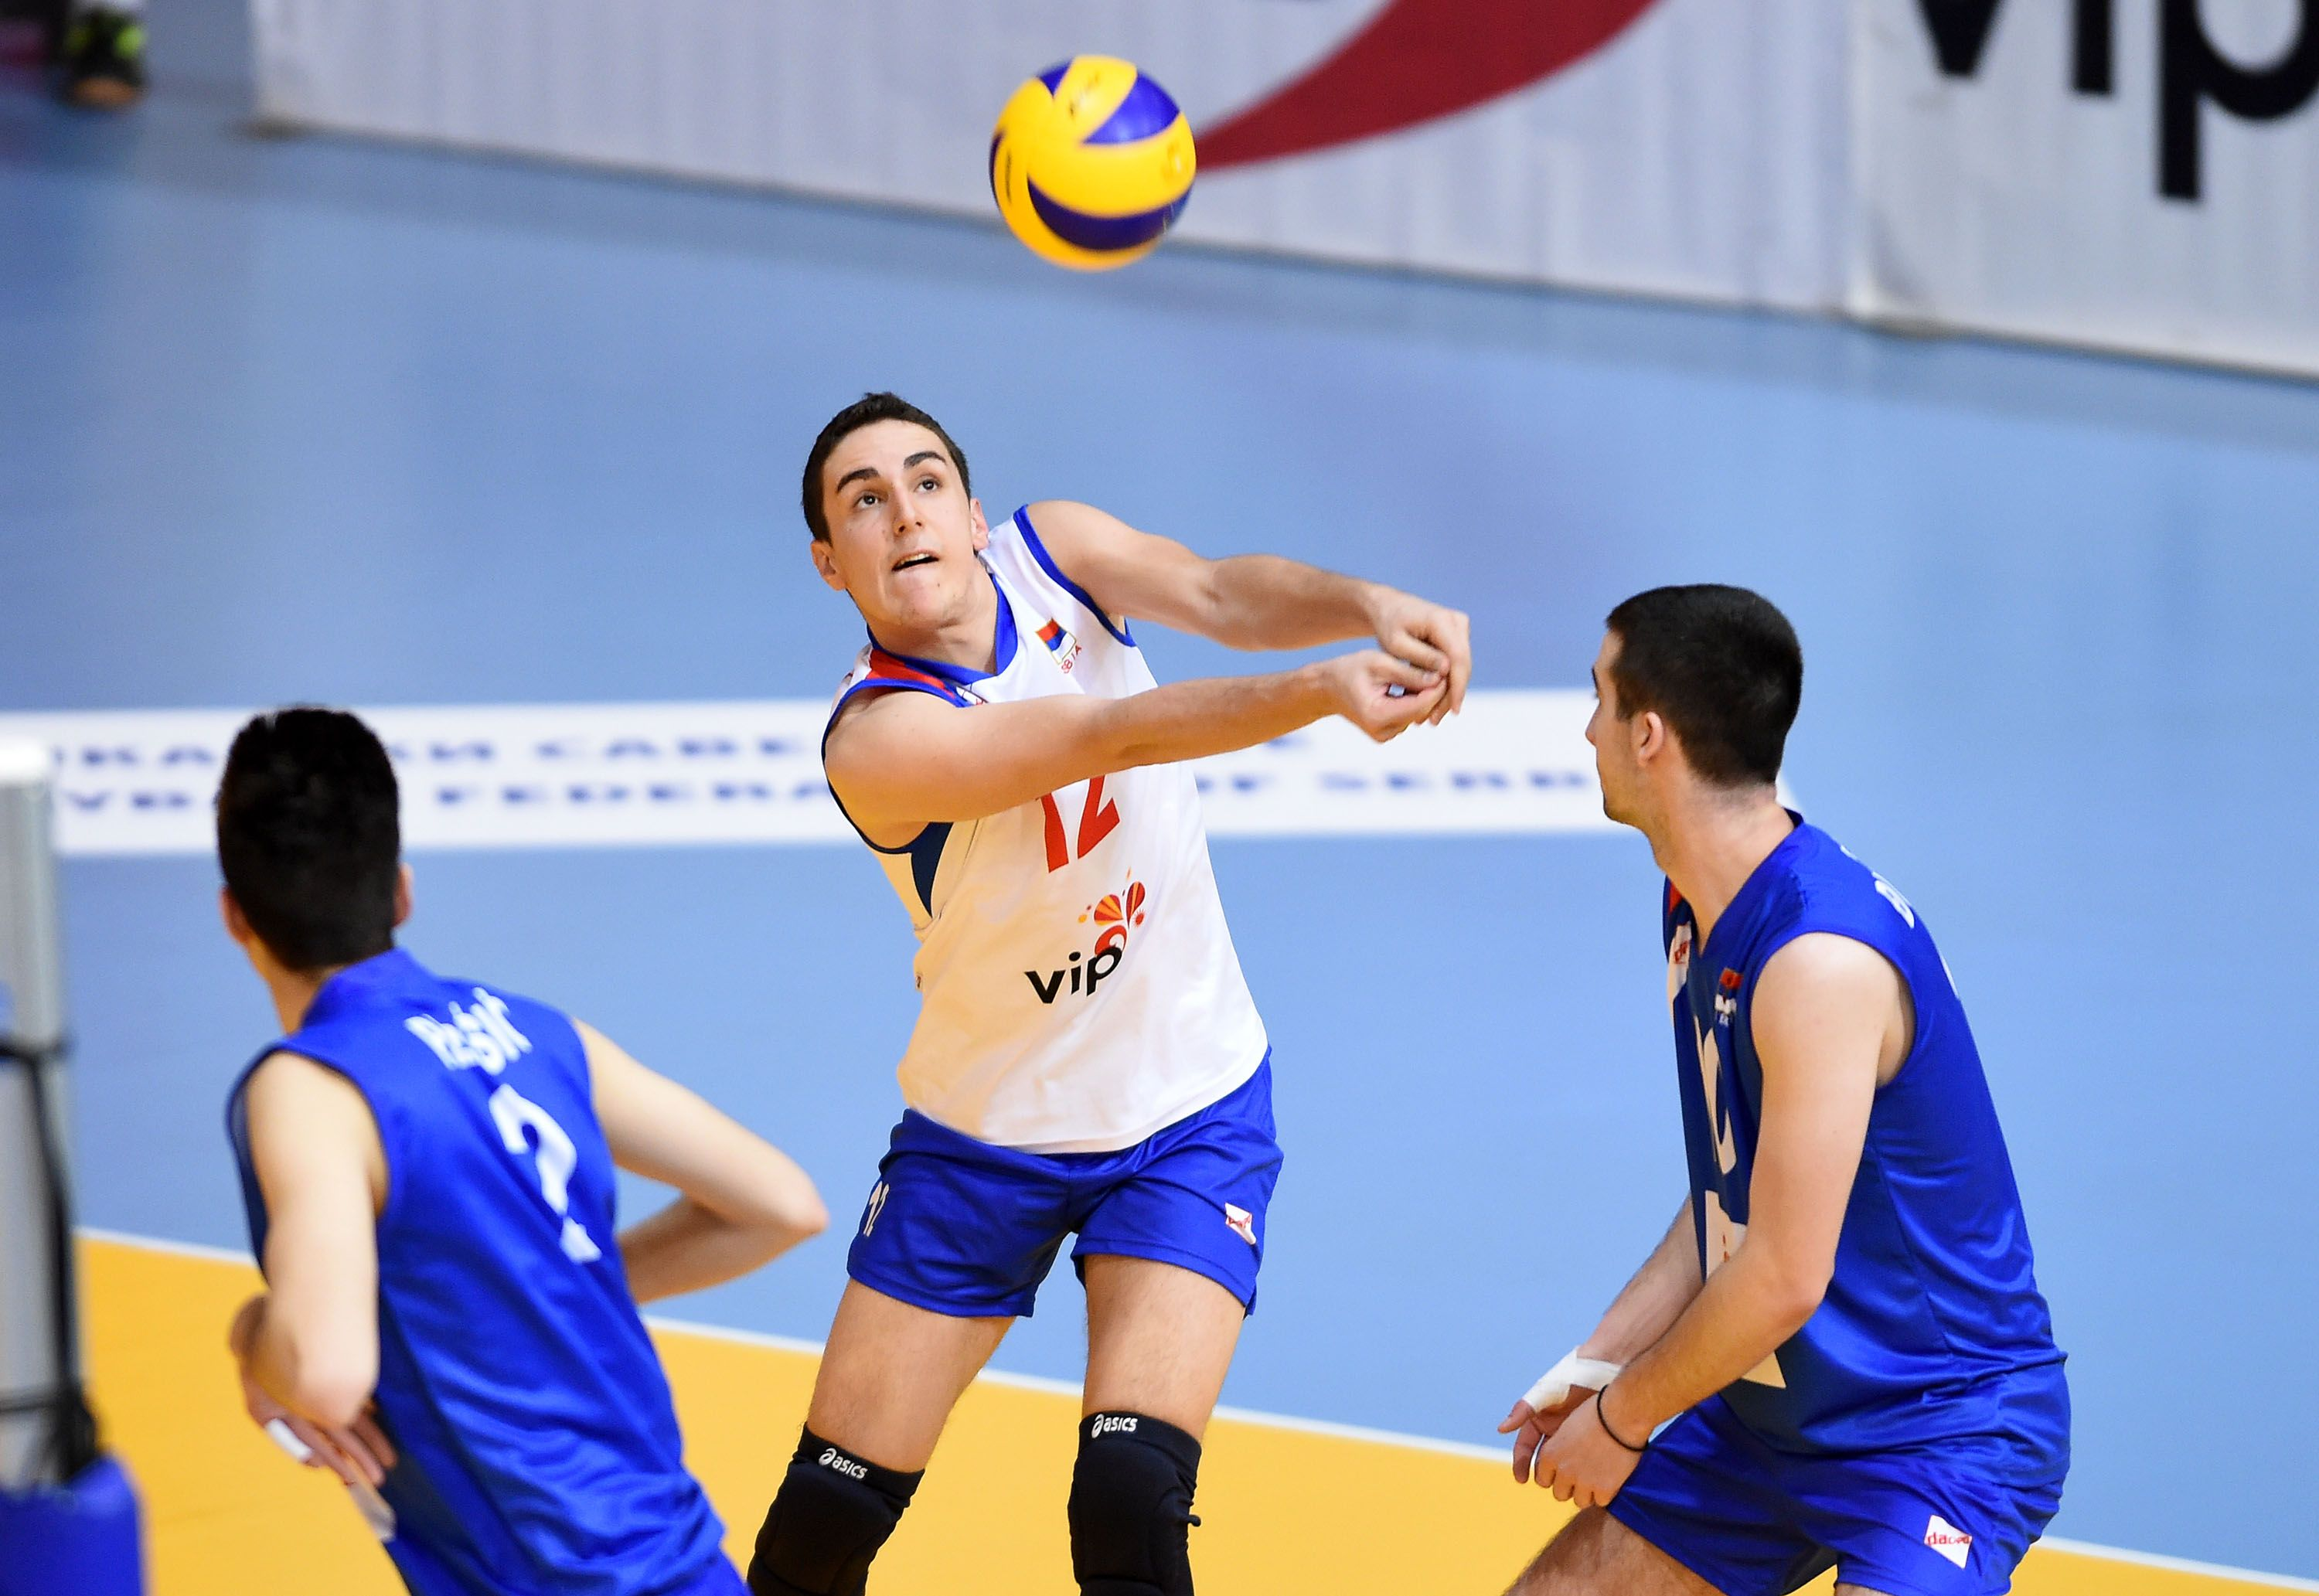 Lazar Stasevic In Action Picture Gallery Image Serbia